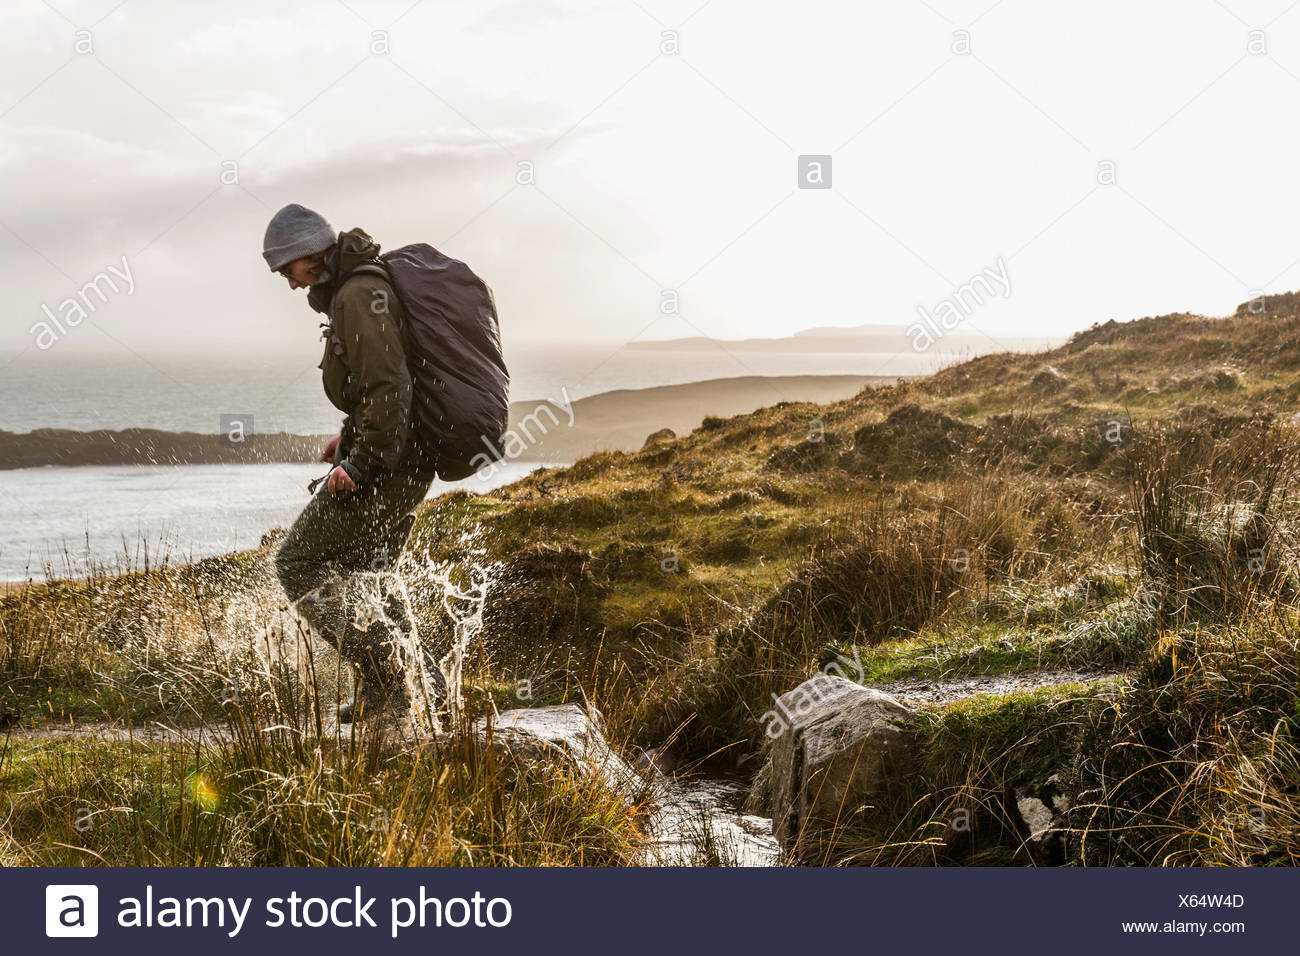 A man with a rucksack and winter clothing leaping across a small stream in an open exposed landscape. - Stock Image